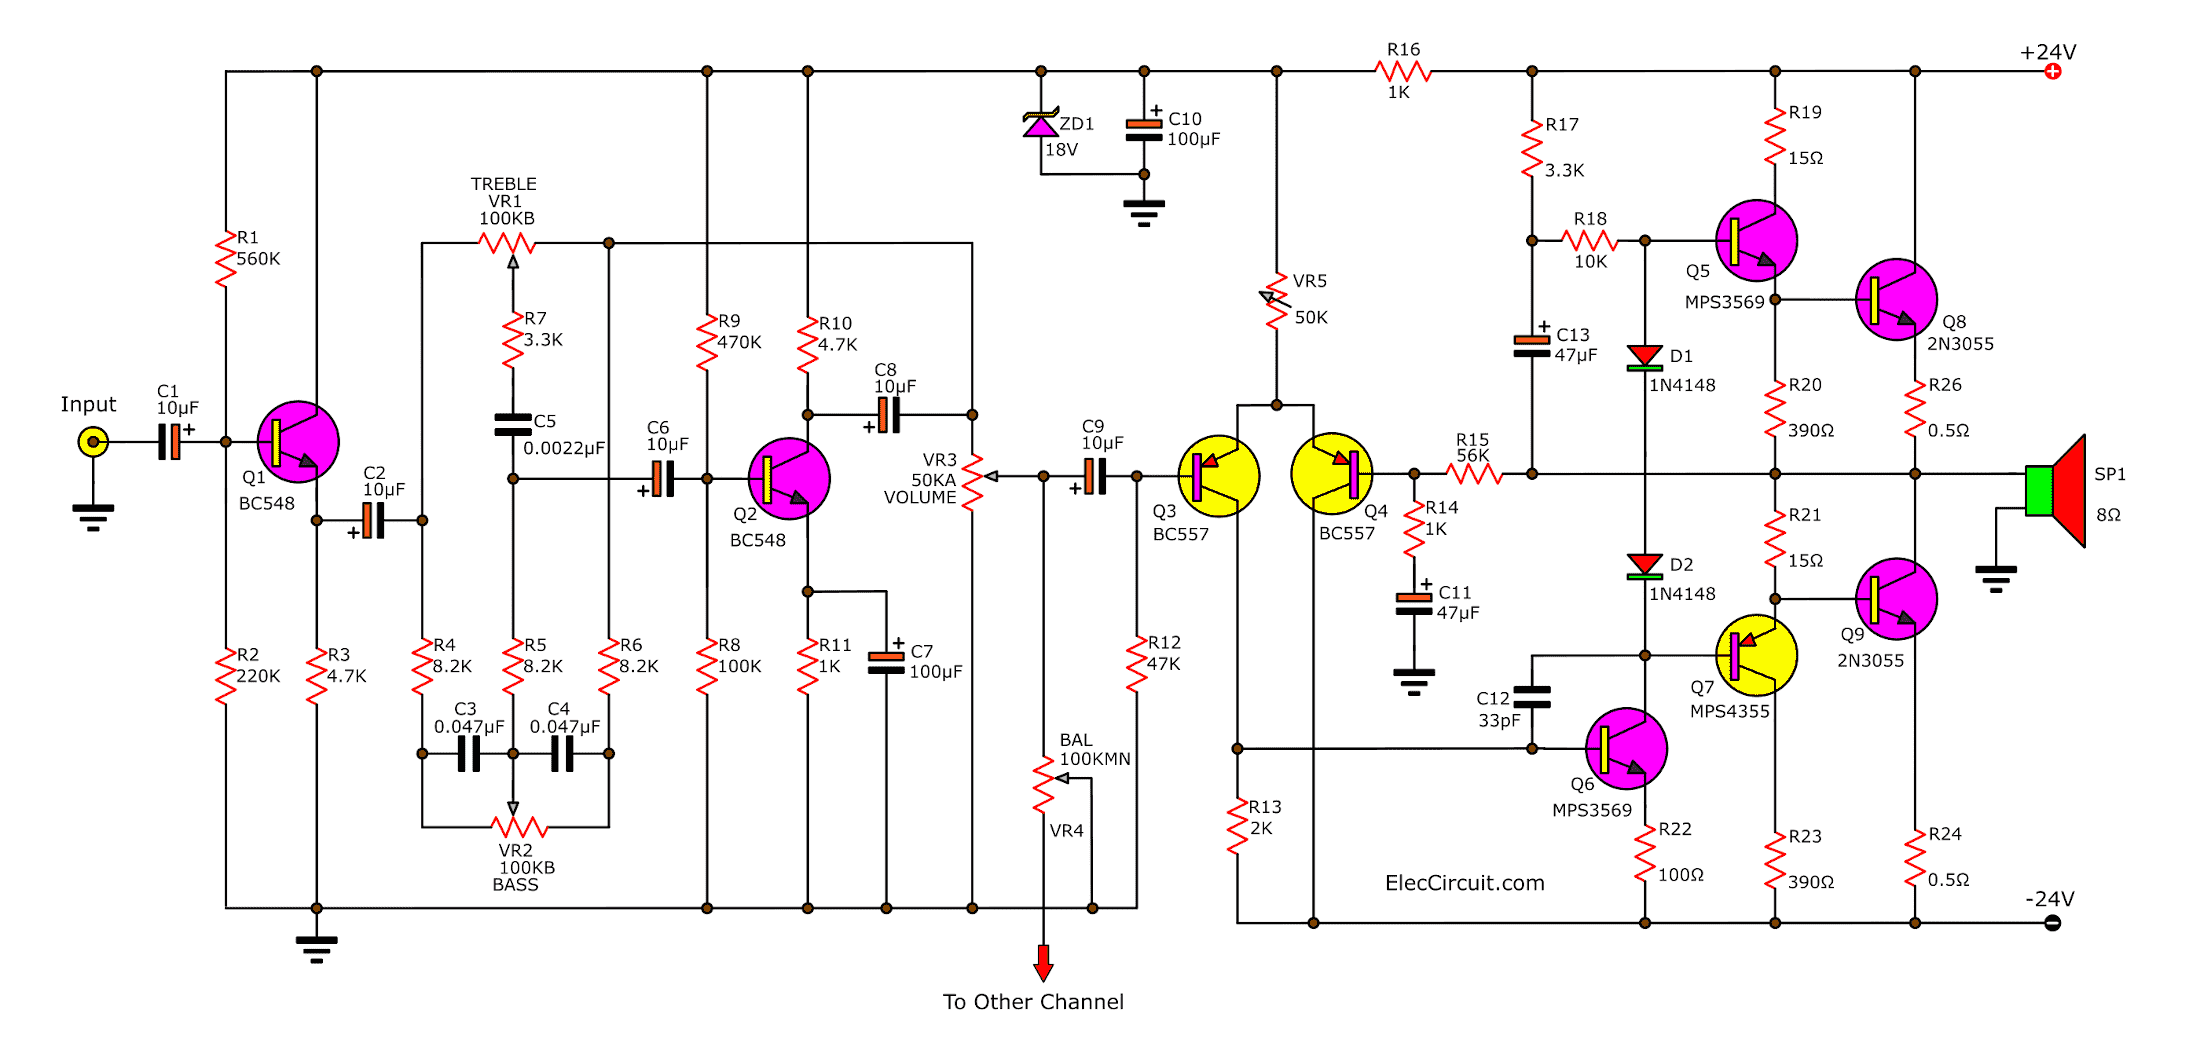 2N3055 amplifier circuit diagram, 30w OCL integrated PCB